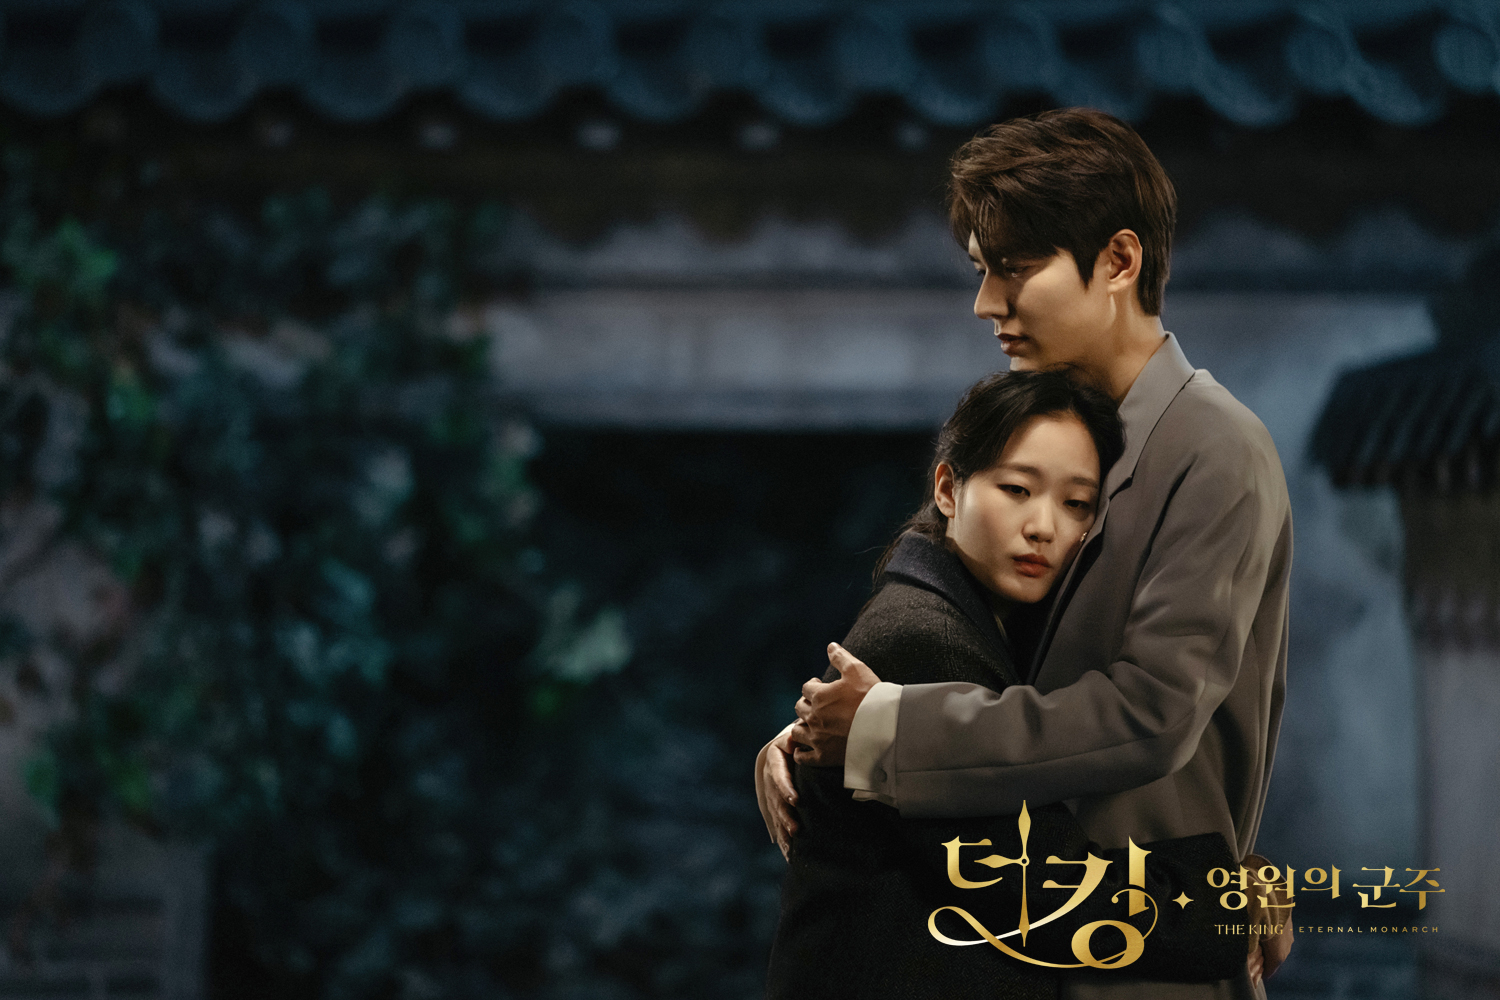 Lee Min Ho's The King Eternal Monarch Top Most Watched Drama on Netflix;  Here are Top 10 Kdramas